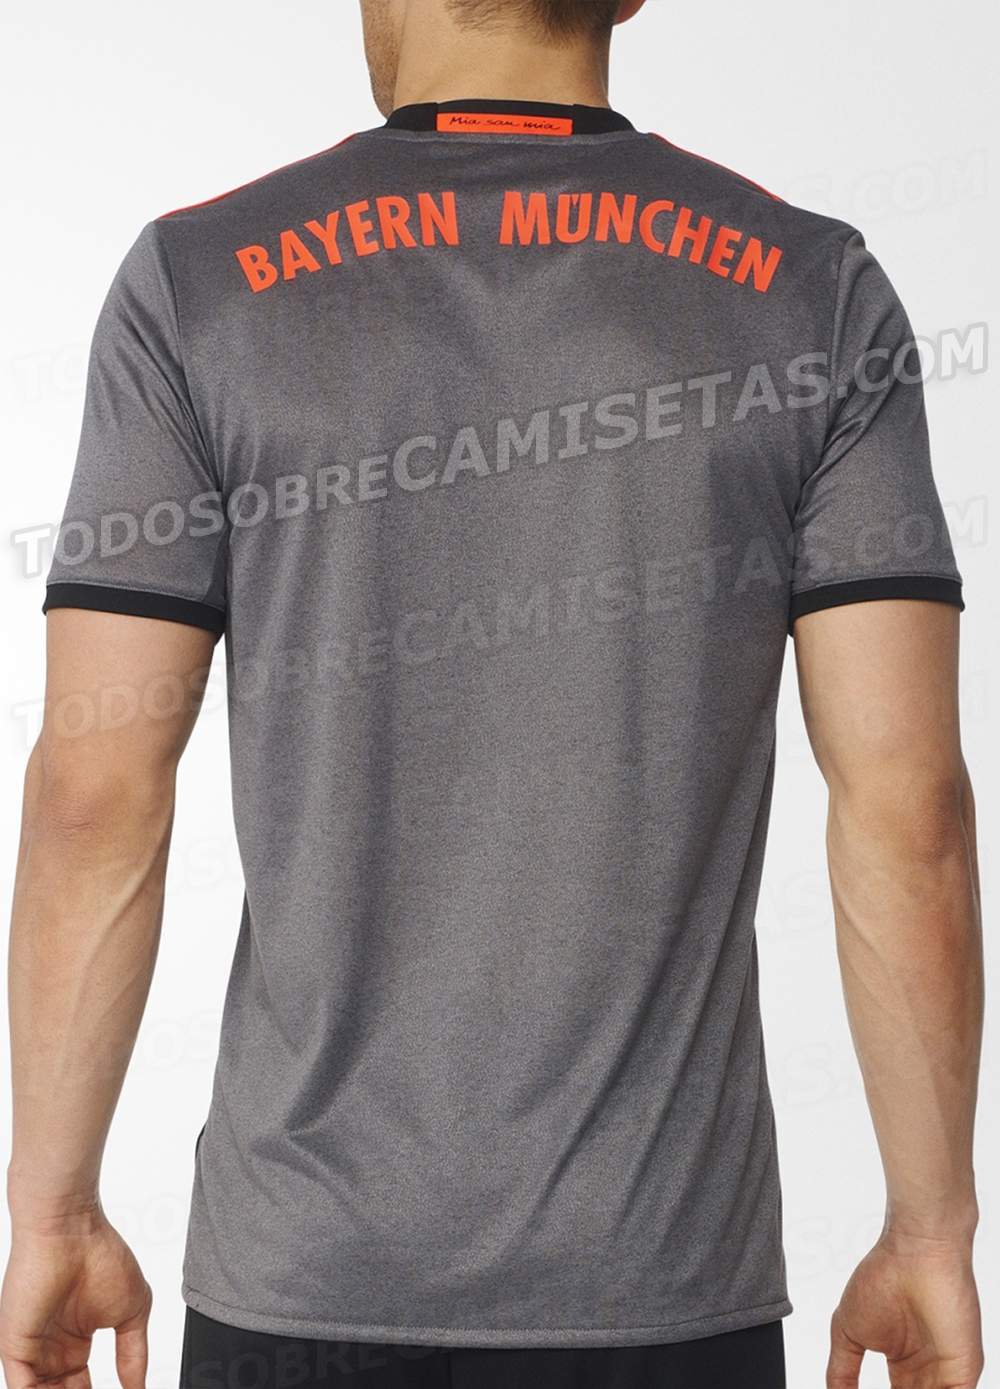 Bayern-Munchen-2016-17-adidas-away-kit-leaked-3.jpg